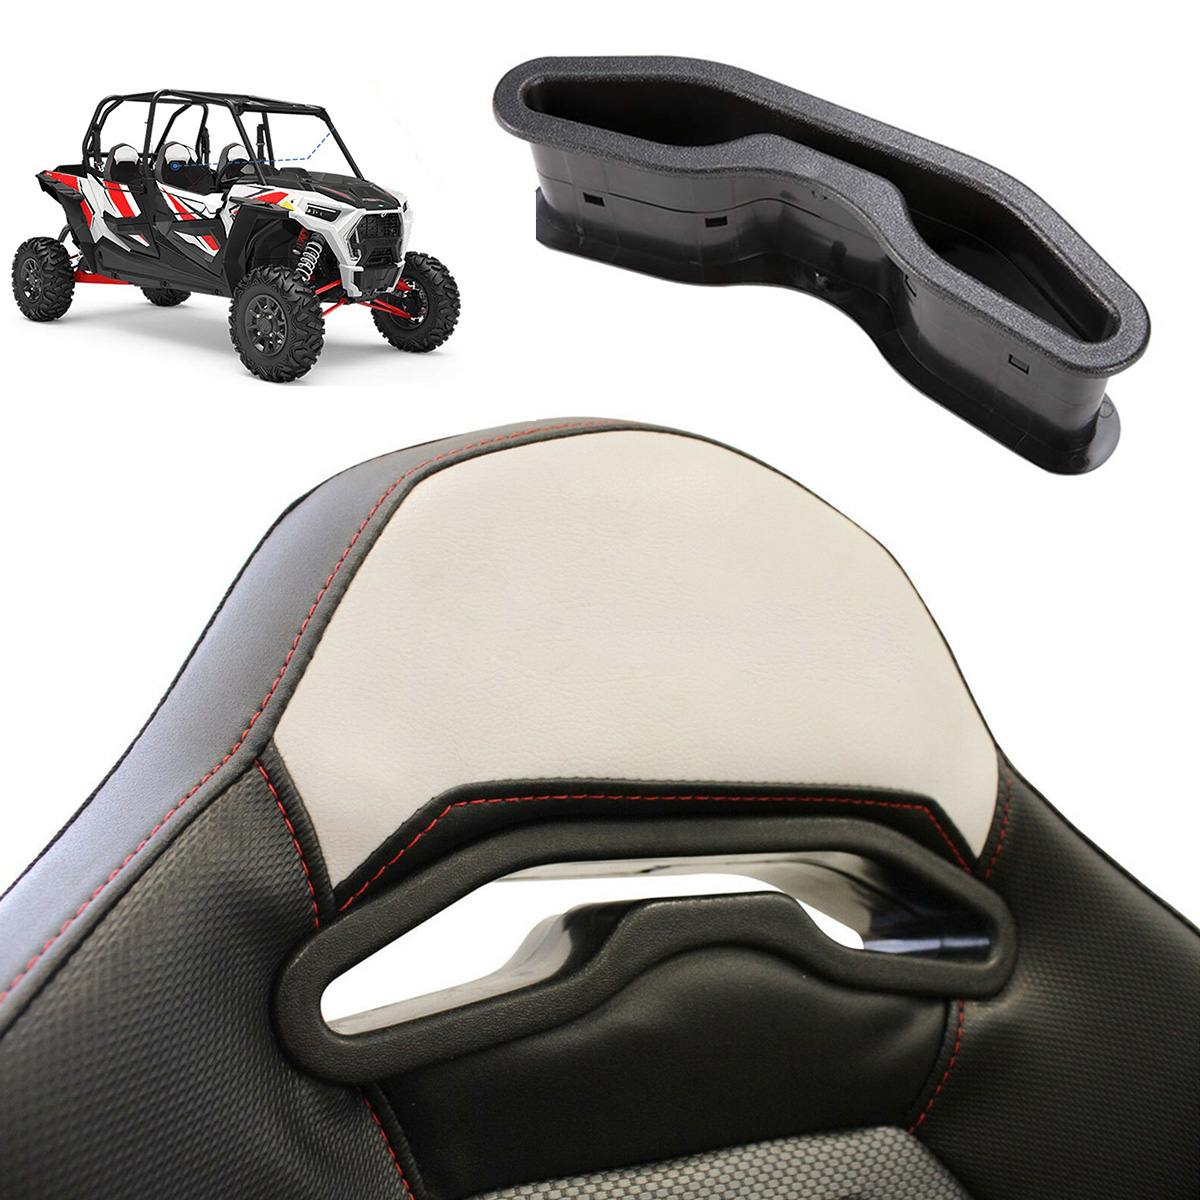 ATV UTV Seat Harness Seat Pass-Through Bezel For Polaris RZR 900 XC XP S900 1000 2014 2015 2016 2017 2018 2019